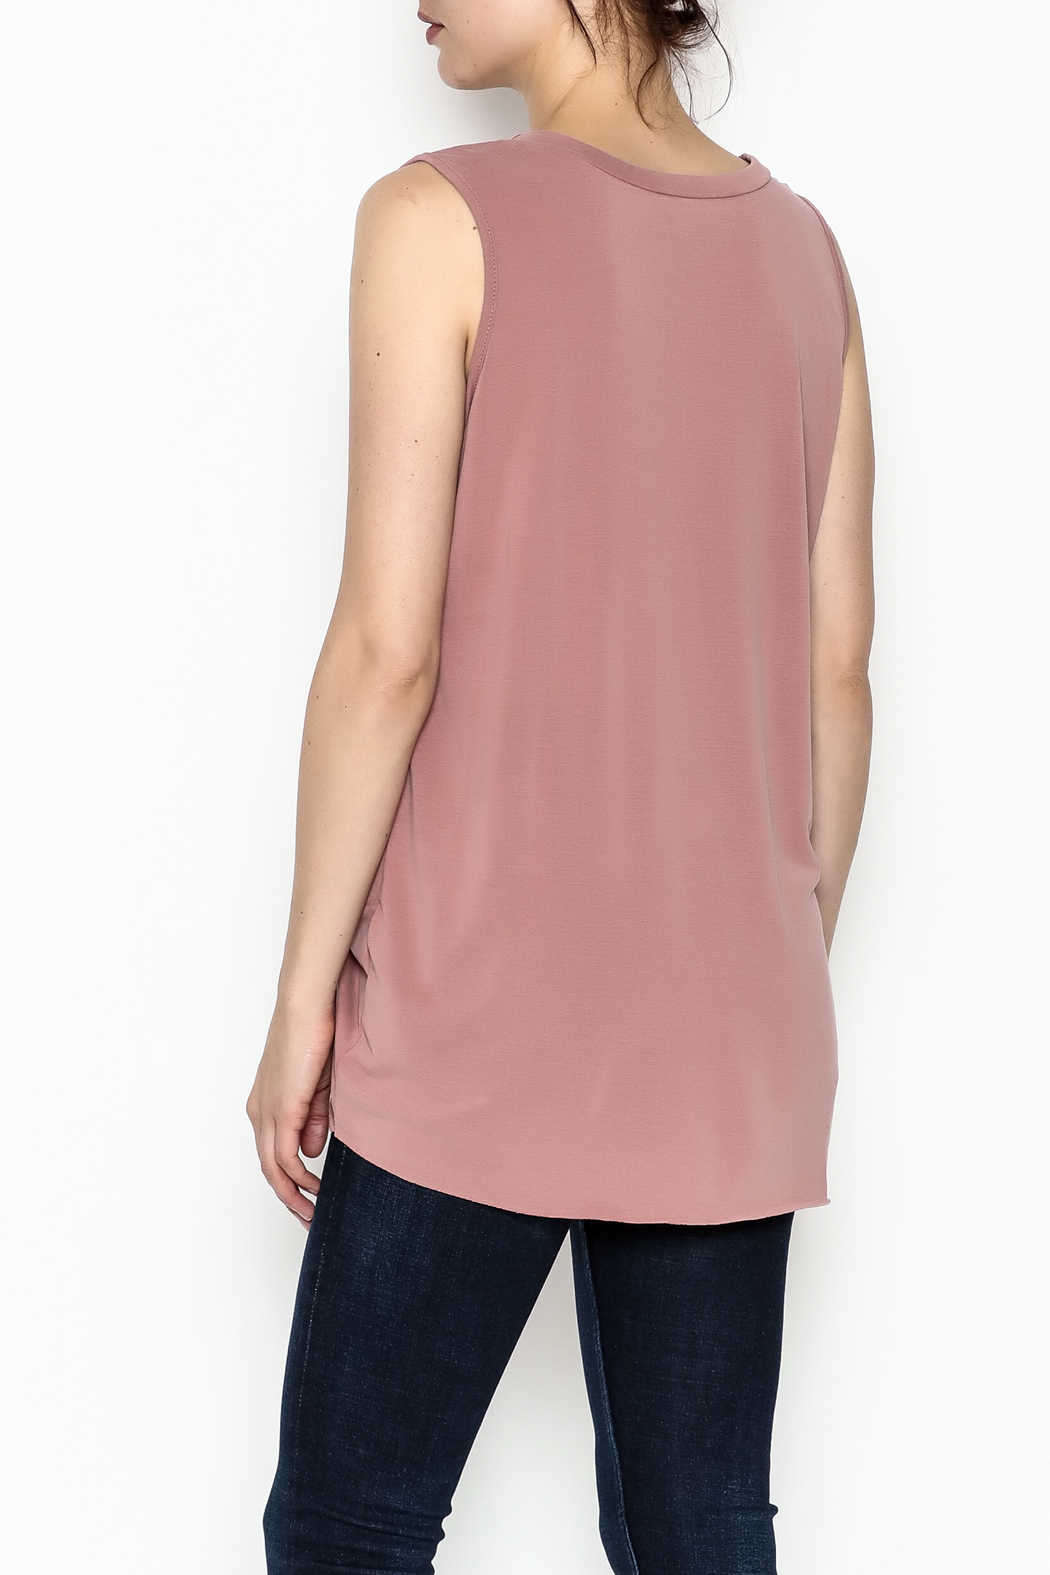 Jodifl Knotted Relaxed Tee - Back Cropped Image